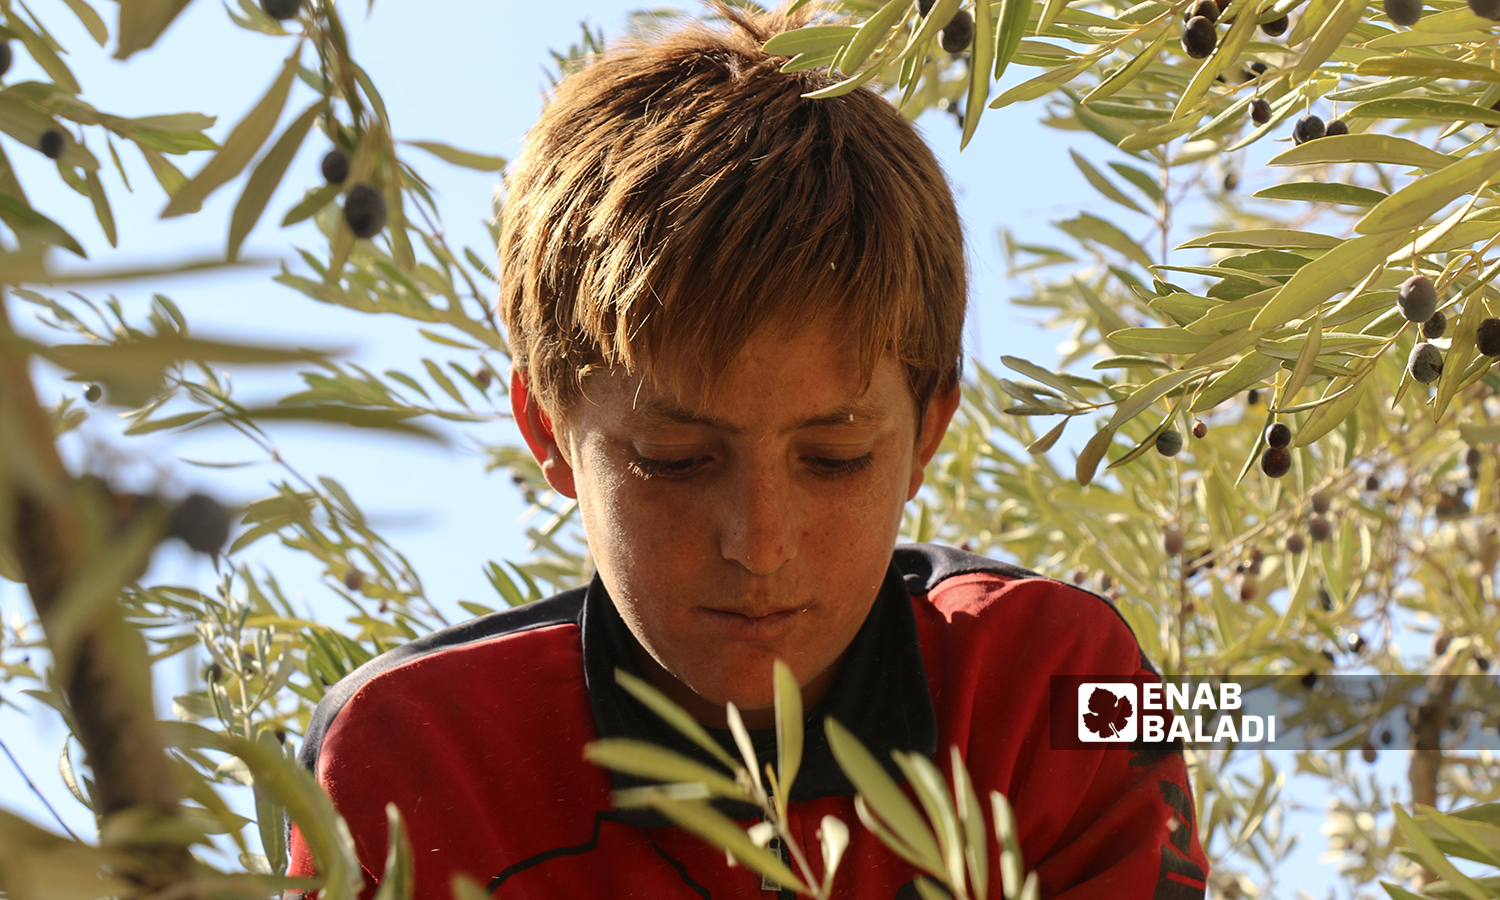 A child picking olives from an olive tree in the village of Kafr Arouq in Idlib countryside- 12 October 2021(Enab Baladi / Iyad Abdul Jawad)